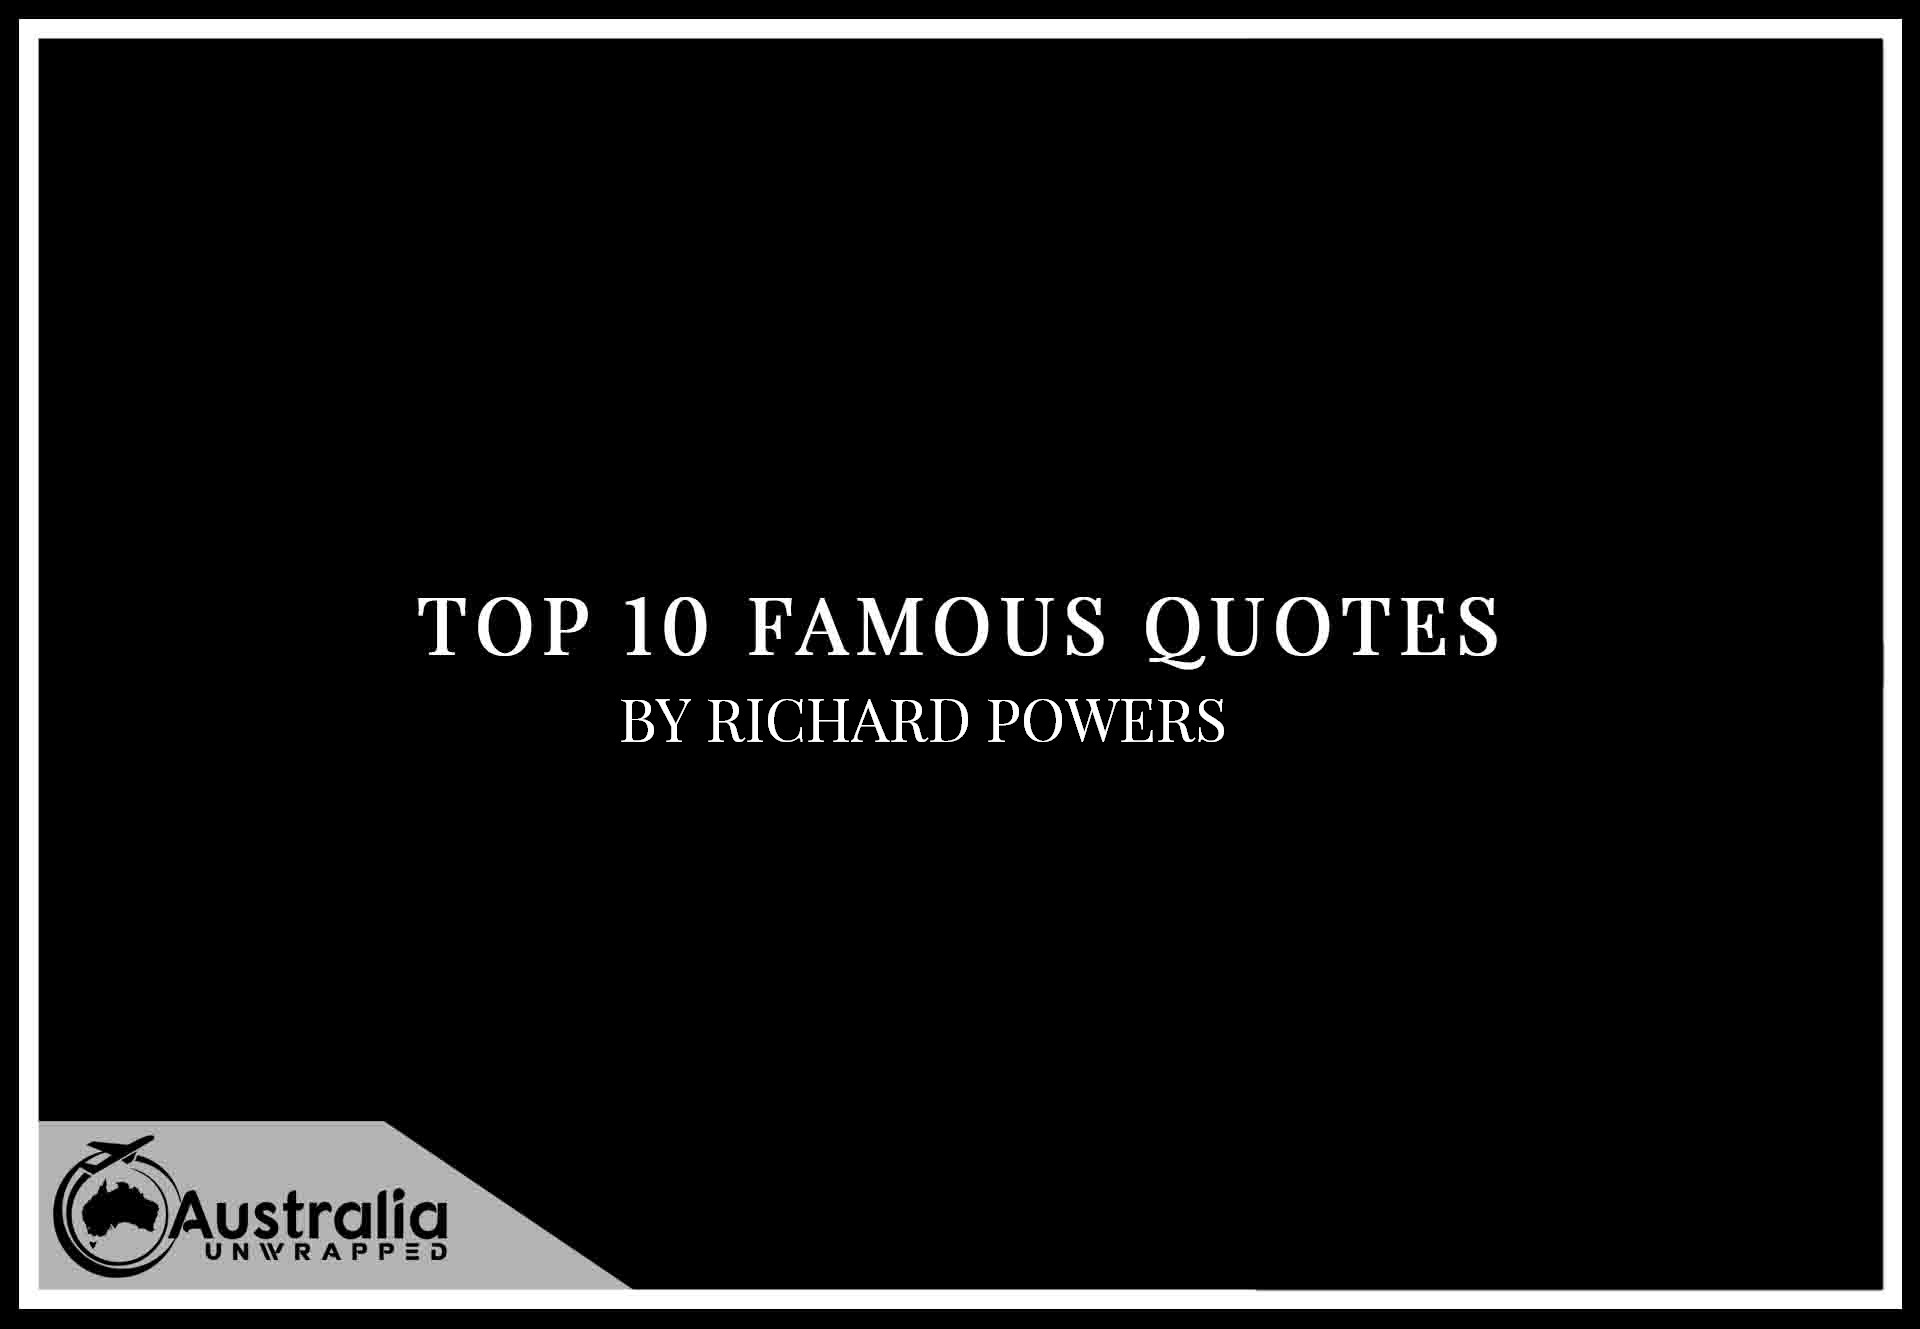 Top 10 Famous Quotes by Author Richard Powers